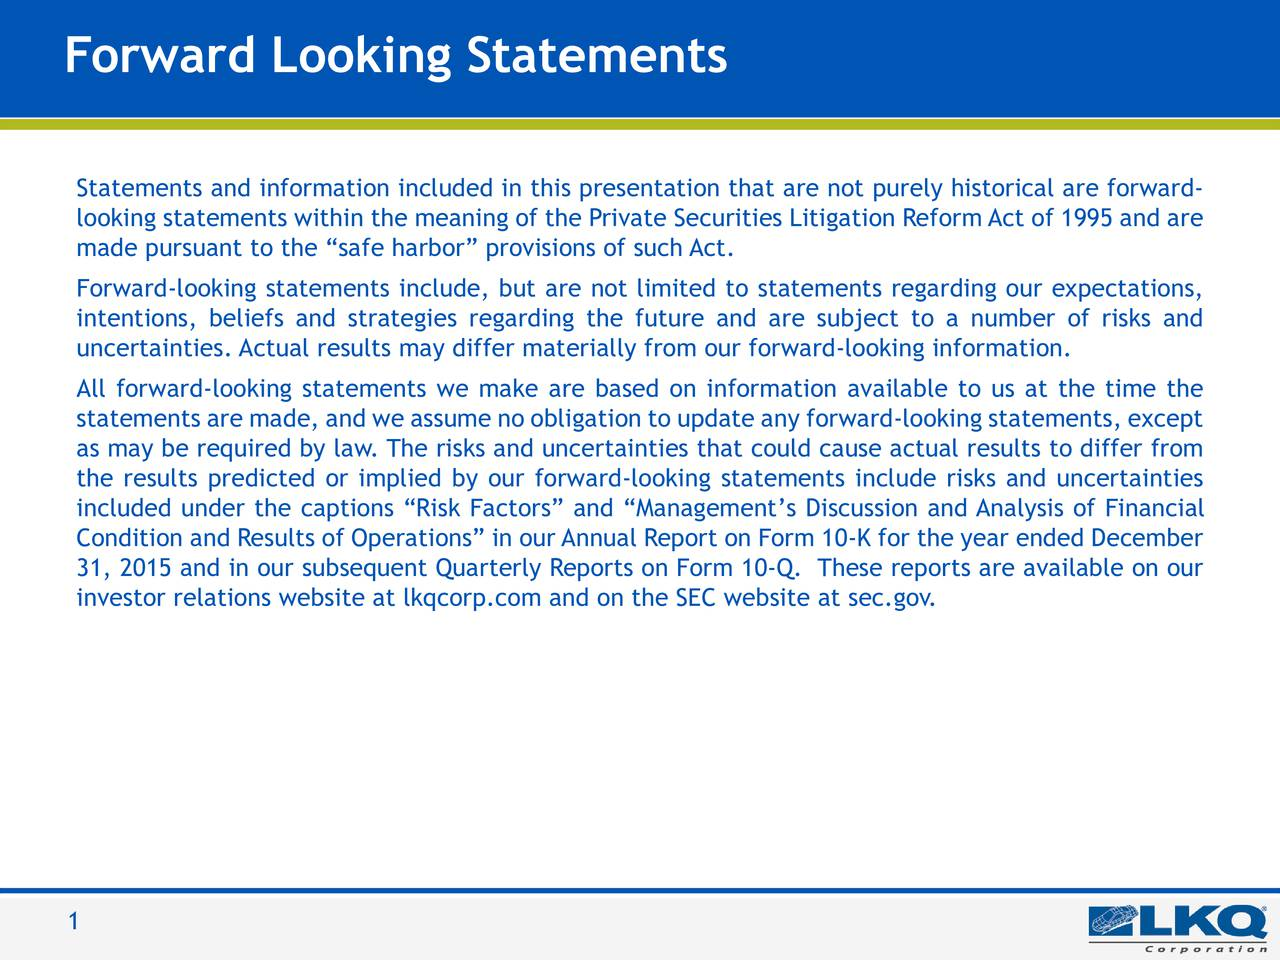 LKQ Blue Statements and information included in this presentation that are not purely historical are forward- 0   85   180 looking statements within the meaning of the Private Securities Litigation Reform Act of 1995 and are made pursuant to the safe harbor provisions of such Act. LKQ Green 176   186   31 Forward-looking statements include, but are not limited to statements regarding our expectations, intentions, beliefs and strategies regarding the future and are subject to a number of risks and LKQ Silver uncertainties. Actual results may differ materially from our forward-looking information. 132   137   140 All forward-looking statements we make are based on information available to us at the time the statements are made, and we assume no obligation to update any forward-looking statements, except Keystone Gold 255   188   31 as may be required by law. The risks and uncertainties that could cause actual results to differ from the results predicted or implied by our forward-looking statements include risks and uncertainties KeyKool Secondary included under the captions Risk Factors and Managements Discussion and Analysis of Financial Blue Condition and Results of Operations in our Annual Report on Form 10-K for the year ended December 137   173   219 31, 2015 and in our subsequent Quarterly Reports on Form 10-Q. These reports are available on our KeyKool investor relations website at lkqcorp.com and on the SEC website at sec.gov. Tertiary Blue 216   232   241 PicKYourPart Oraange 211   77   30 210   35   42 LKQ Gray 62   70   70 1